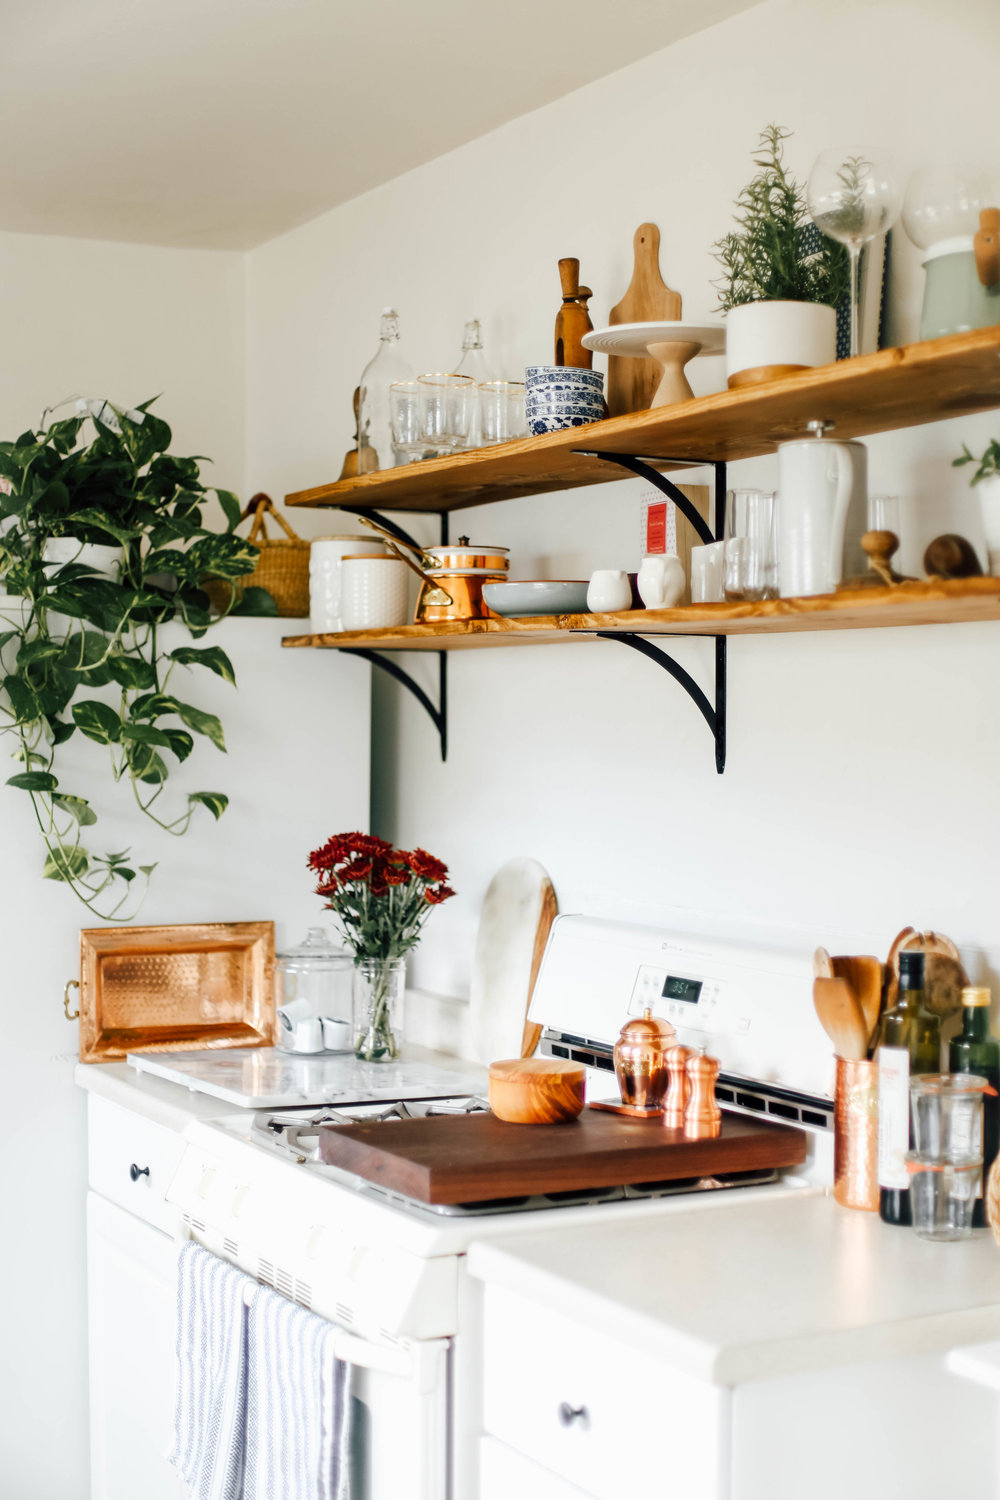 The Benefits Of Open Shelving In The Kitchen: Open Kitchen Shelves For Under $100